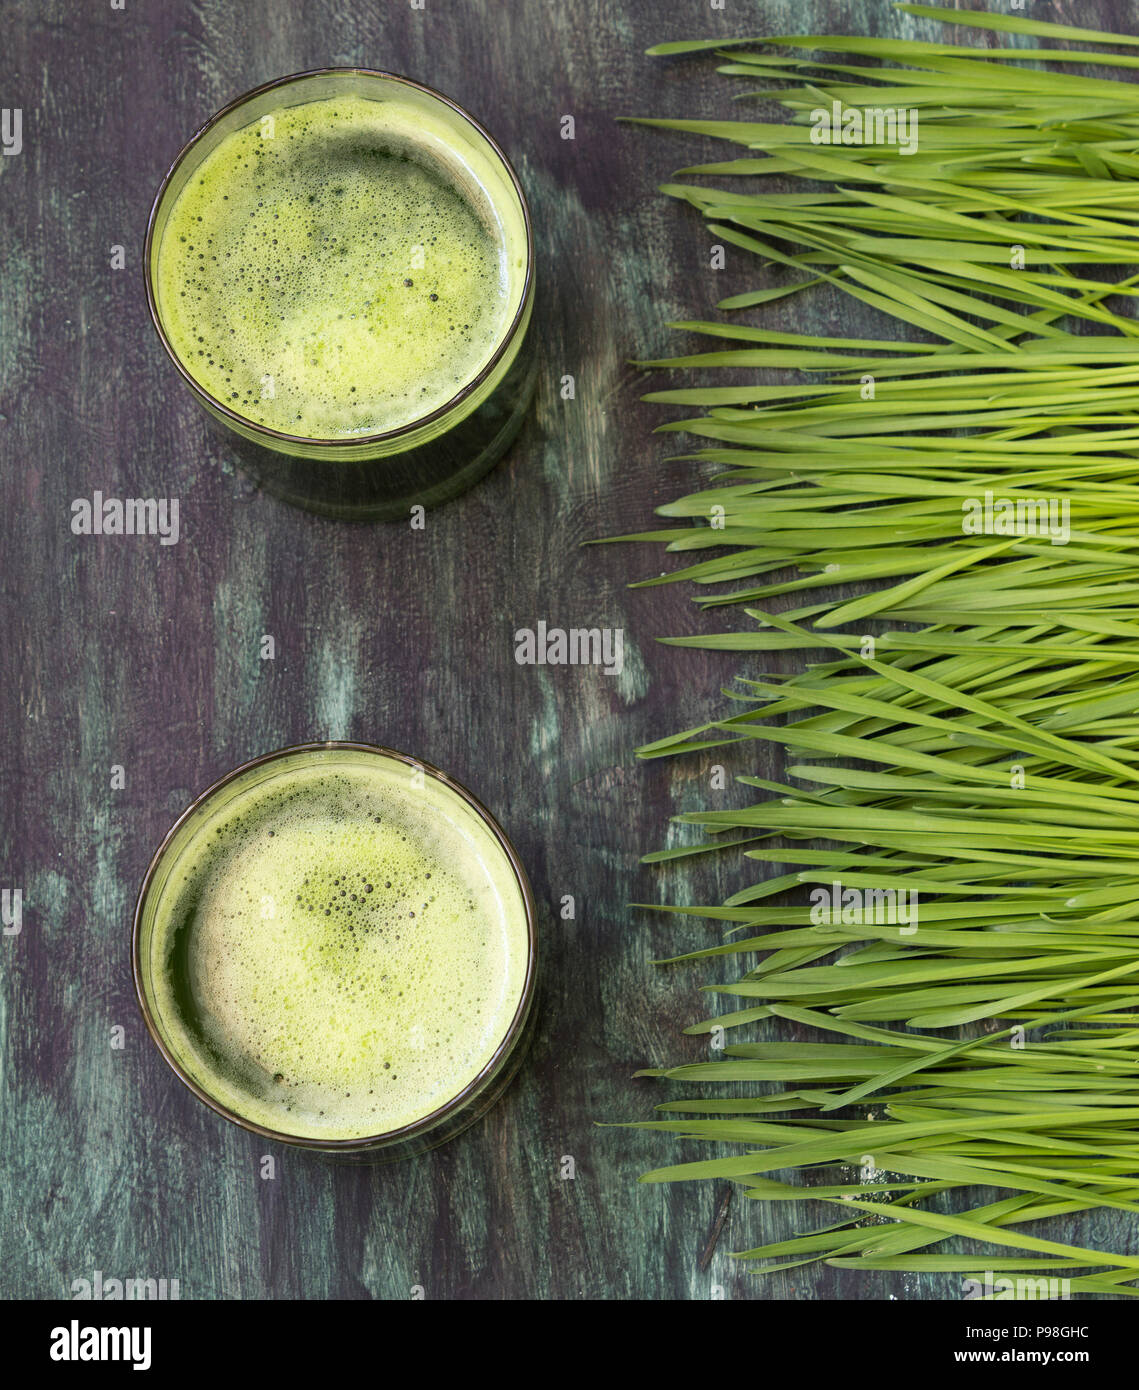 Wheatgrass and glass of green juice- overhead shot - Stock Image